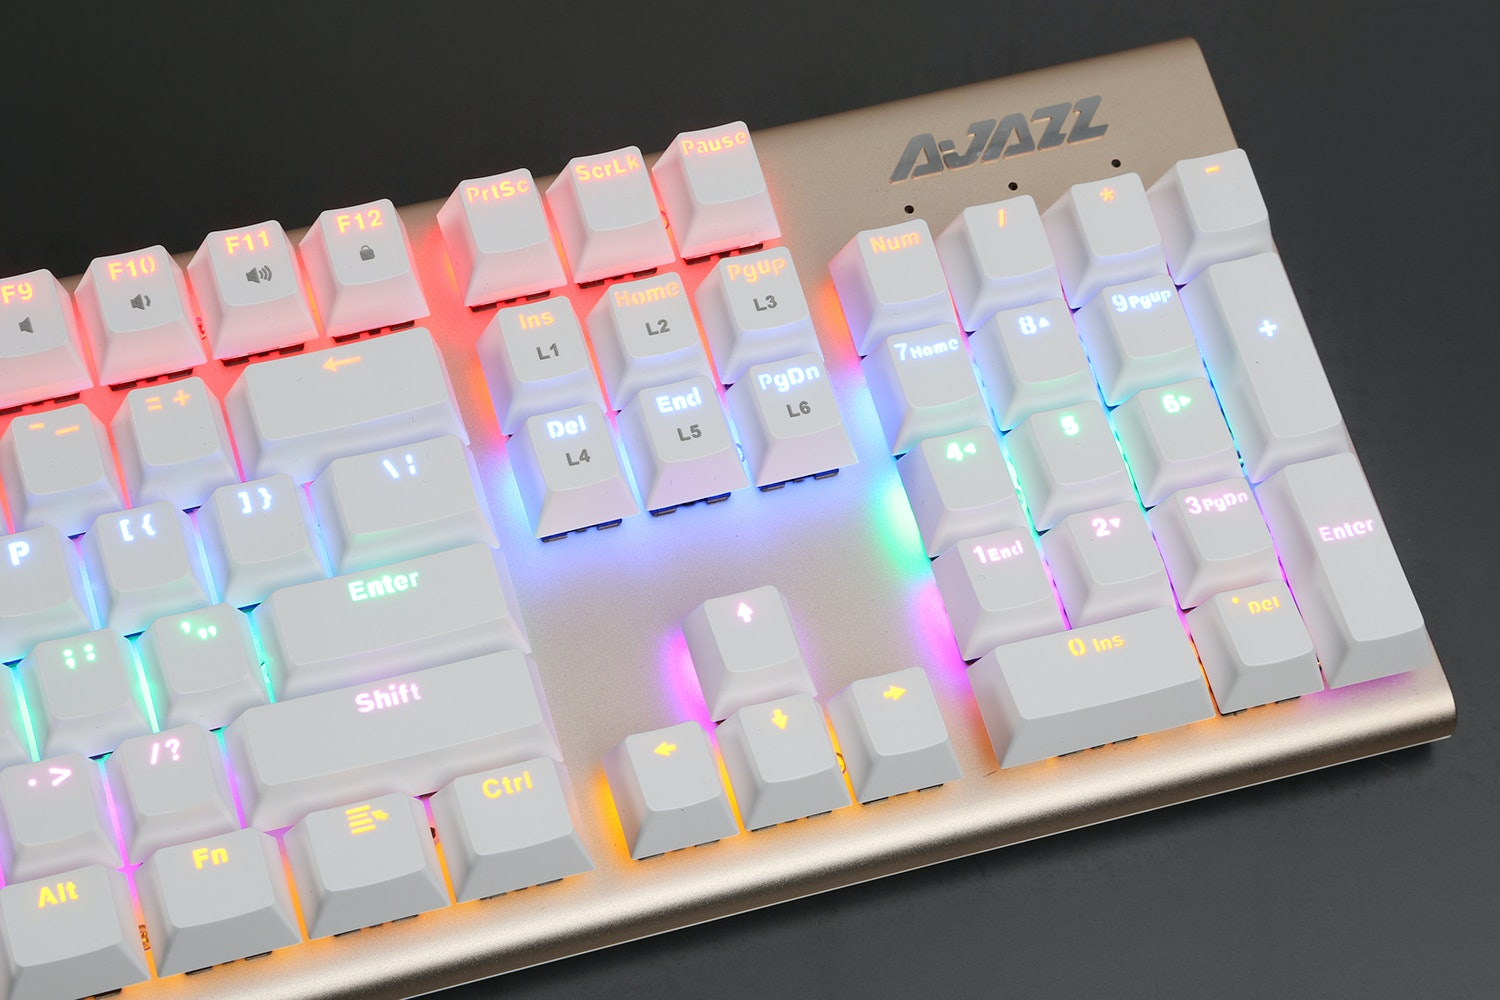 AJAZZ AK40S Fullsize Mechanical Keyboard